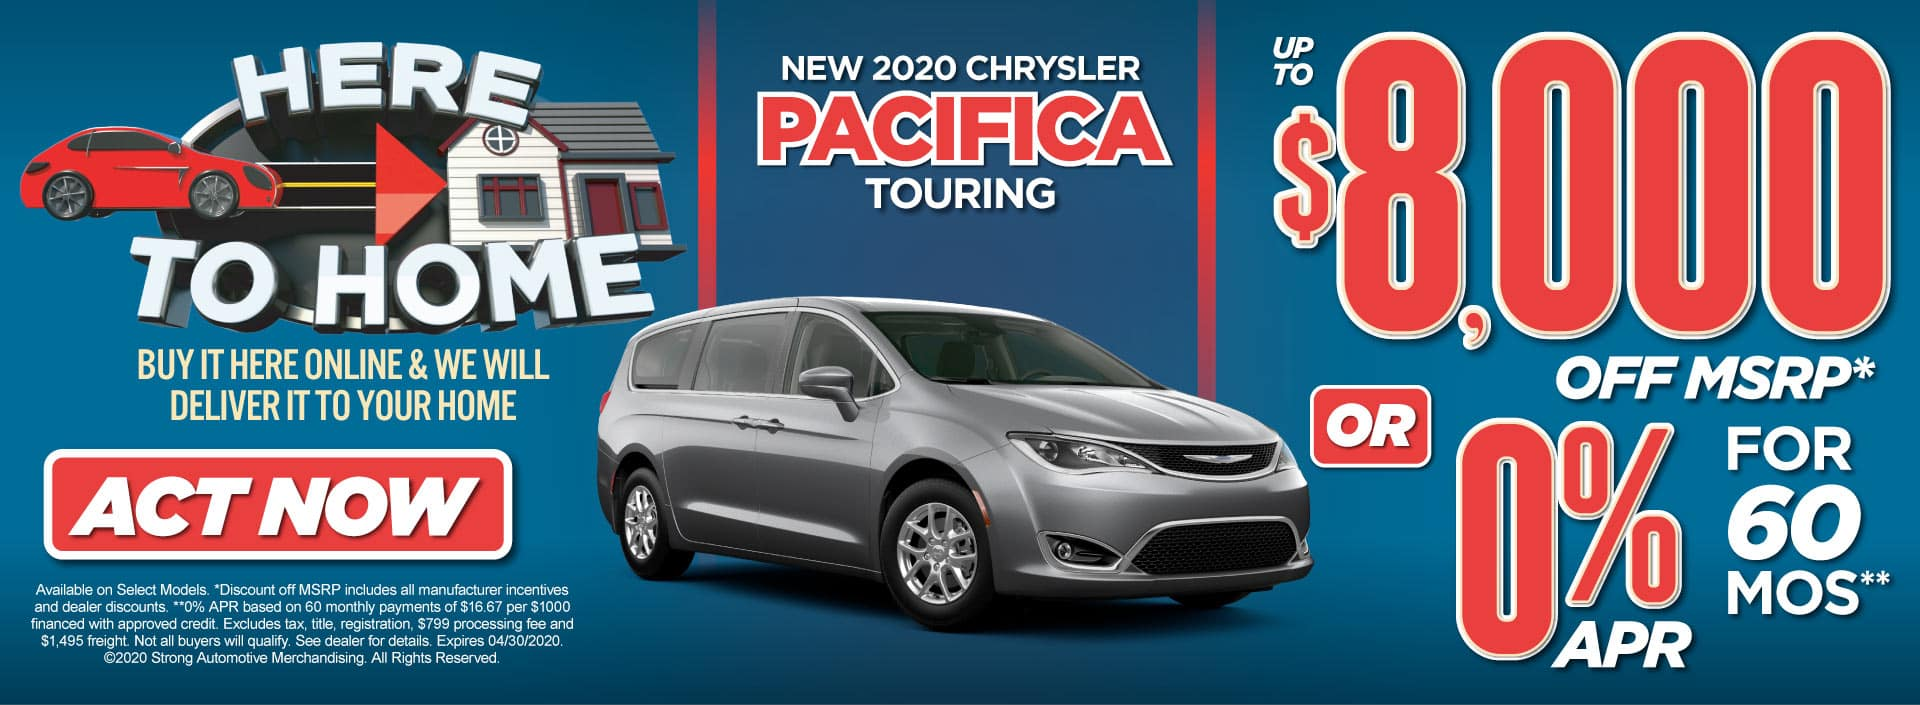 New 2020 Chrysler Pacifica Special Act Now